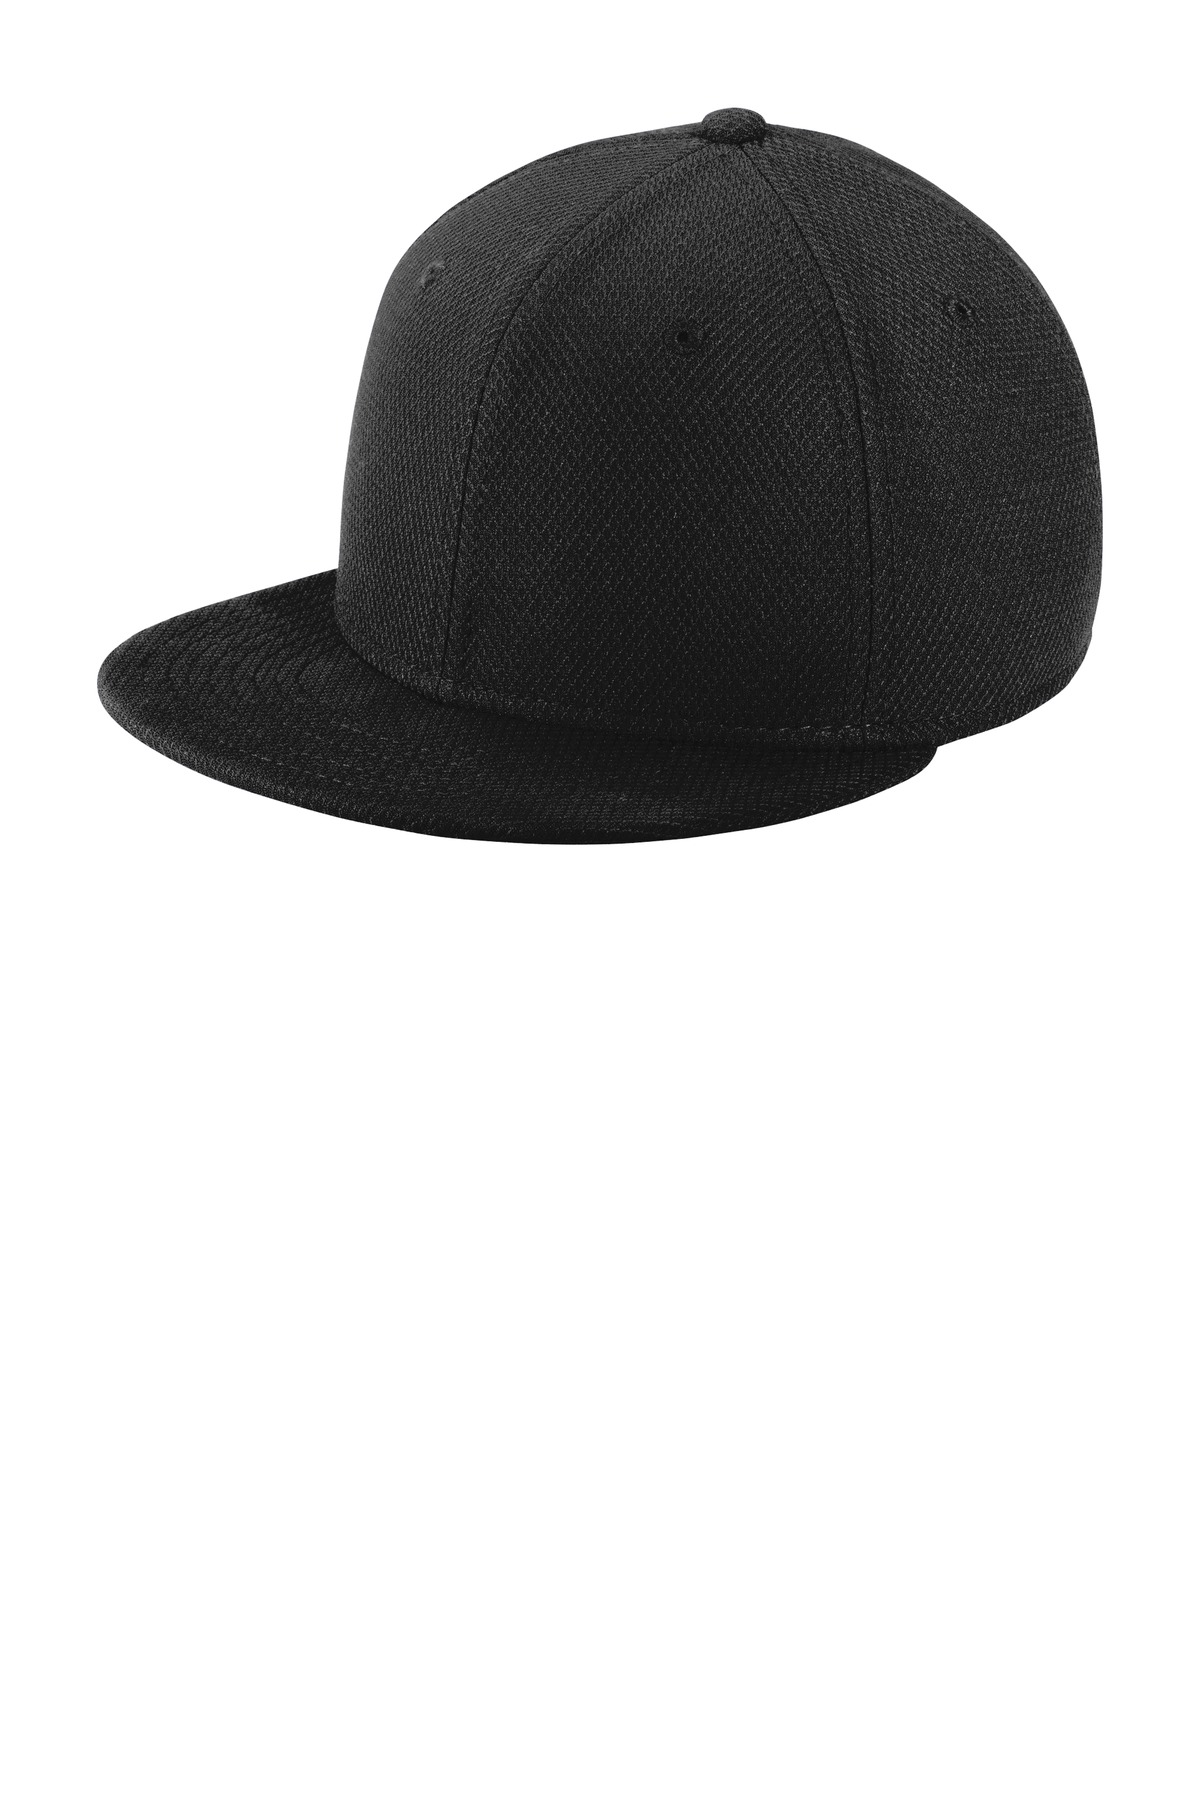 New Era  ®  Youth Original Fit Diamond Era Flat Bill Snapback Cap. NE304 - Black